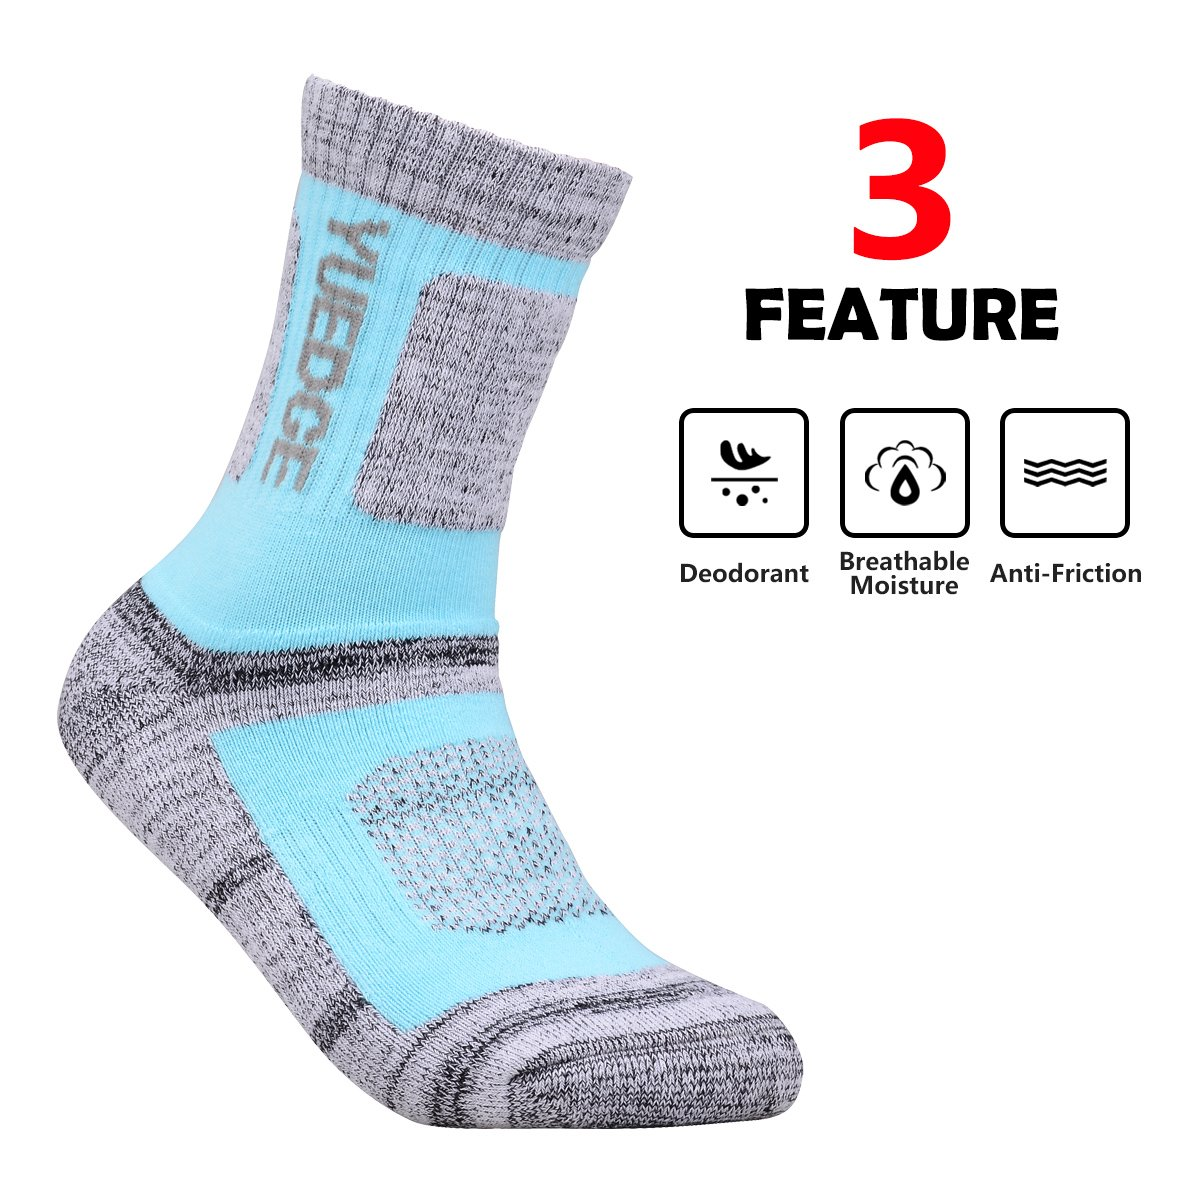 YUEDGE 3 Pairs Women's Women's Wicking Cushion Crew Socks Performance Workout Athletic Sports Socks (L) by YUEDGE (Image #2)